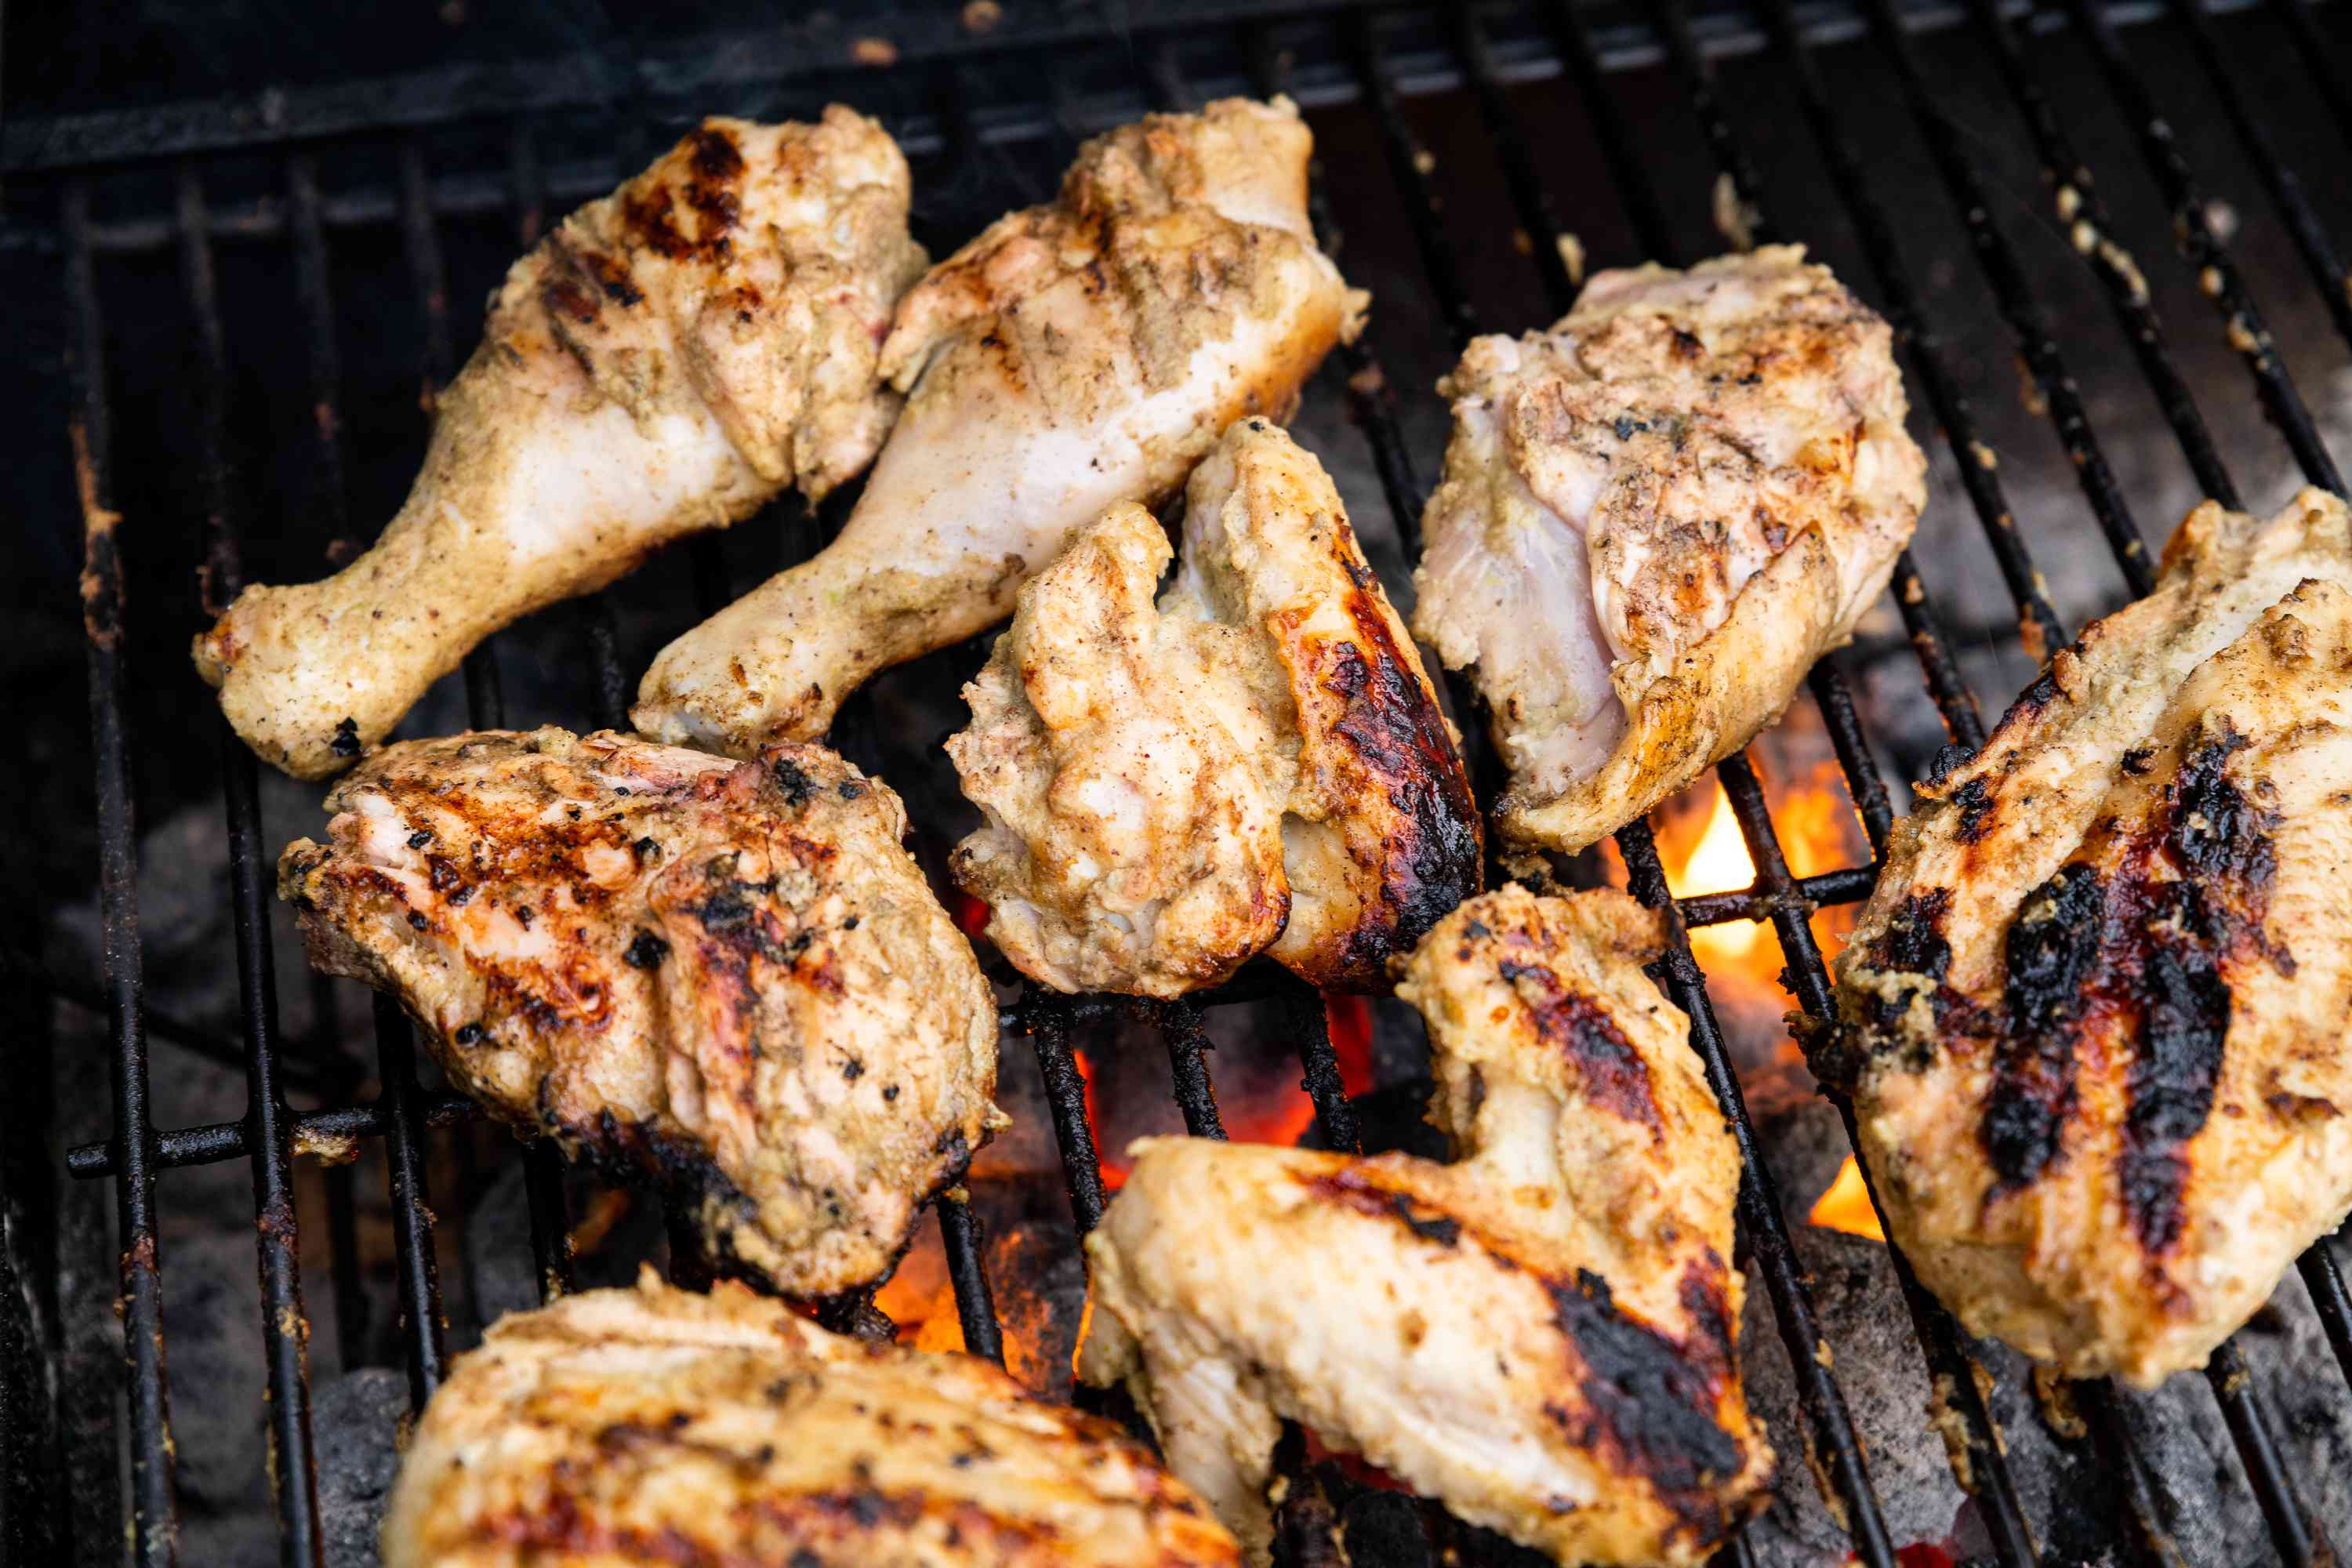 Authentic Jamaican Jerk Chicken on the grill